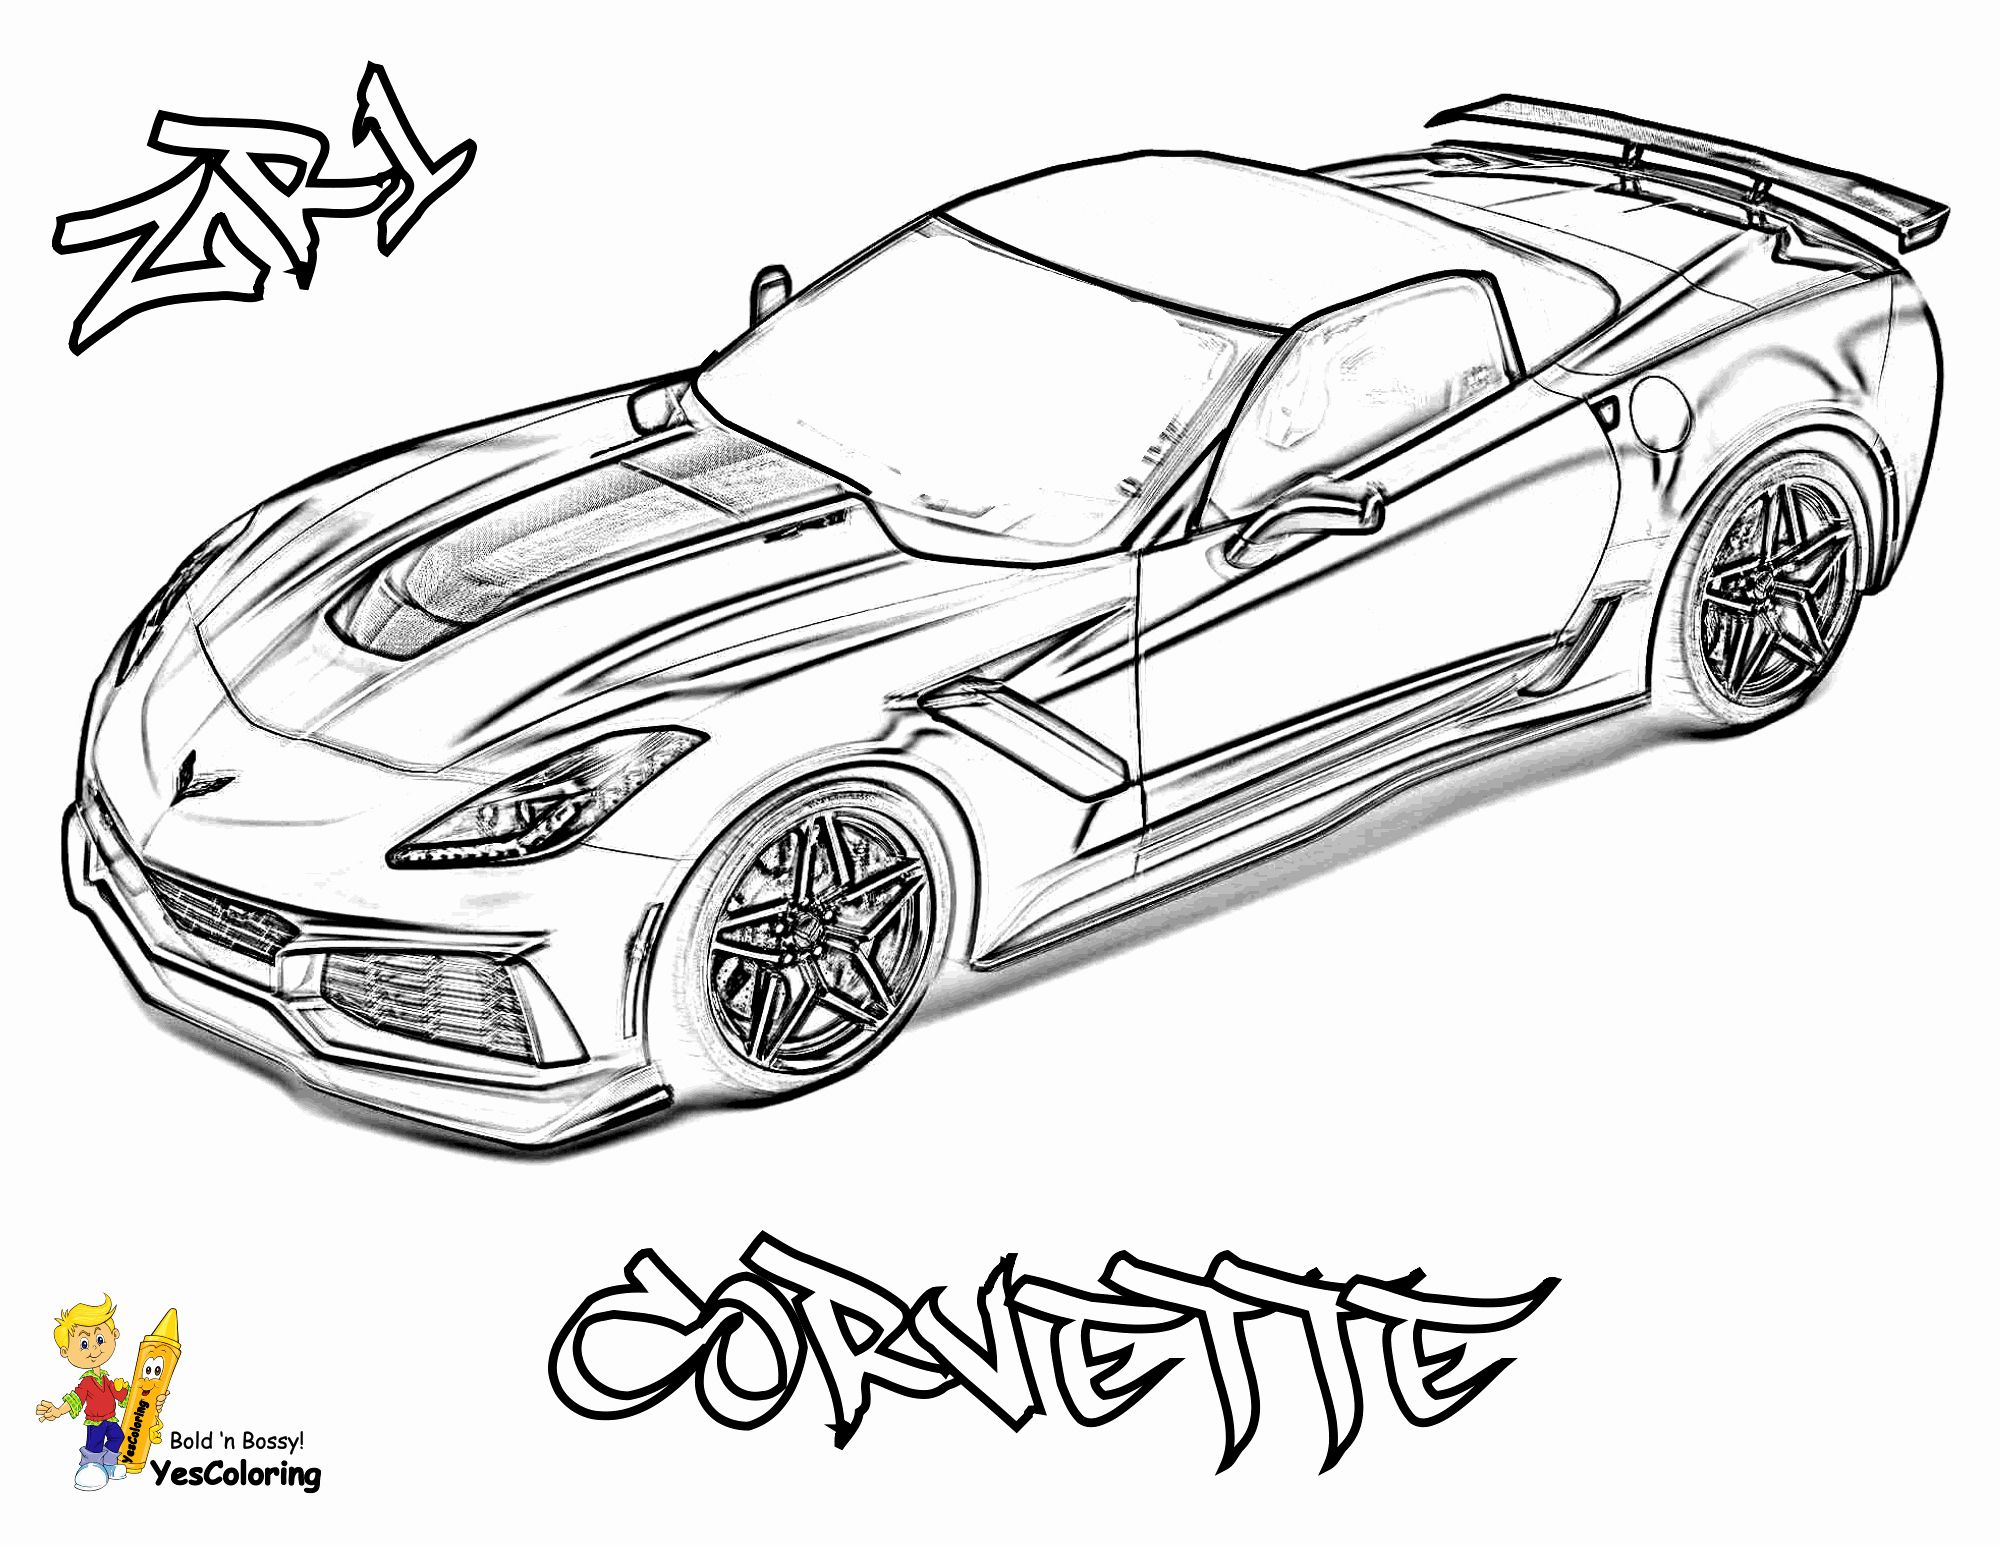 Car Coloring Pages Printable Unique Red Blooded Car Coloring Pages Free Corvettes Cars Coloring Pages Race Car Coloring Pages Coloring Pages